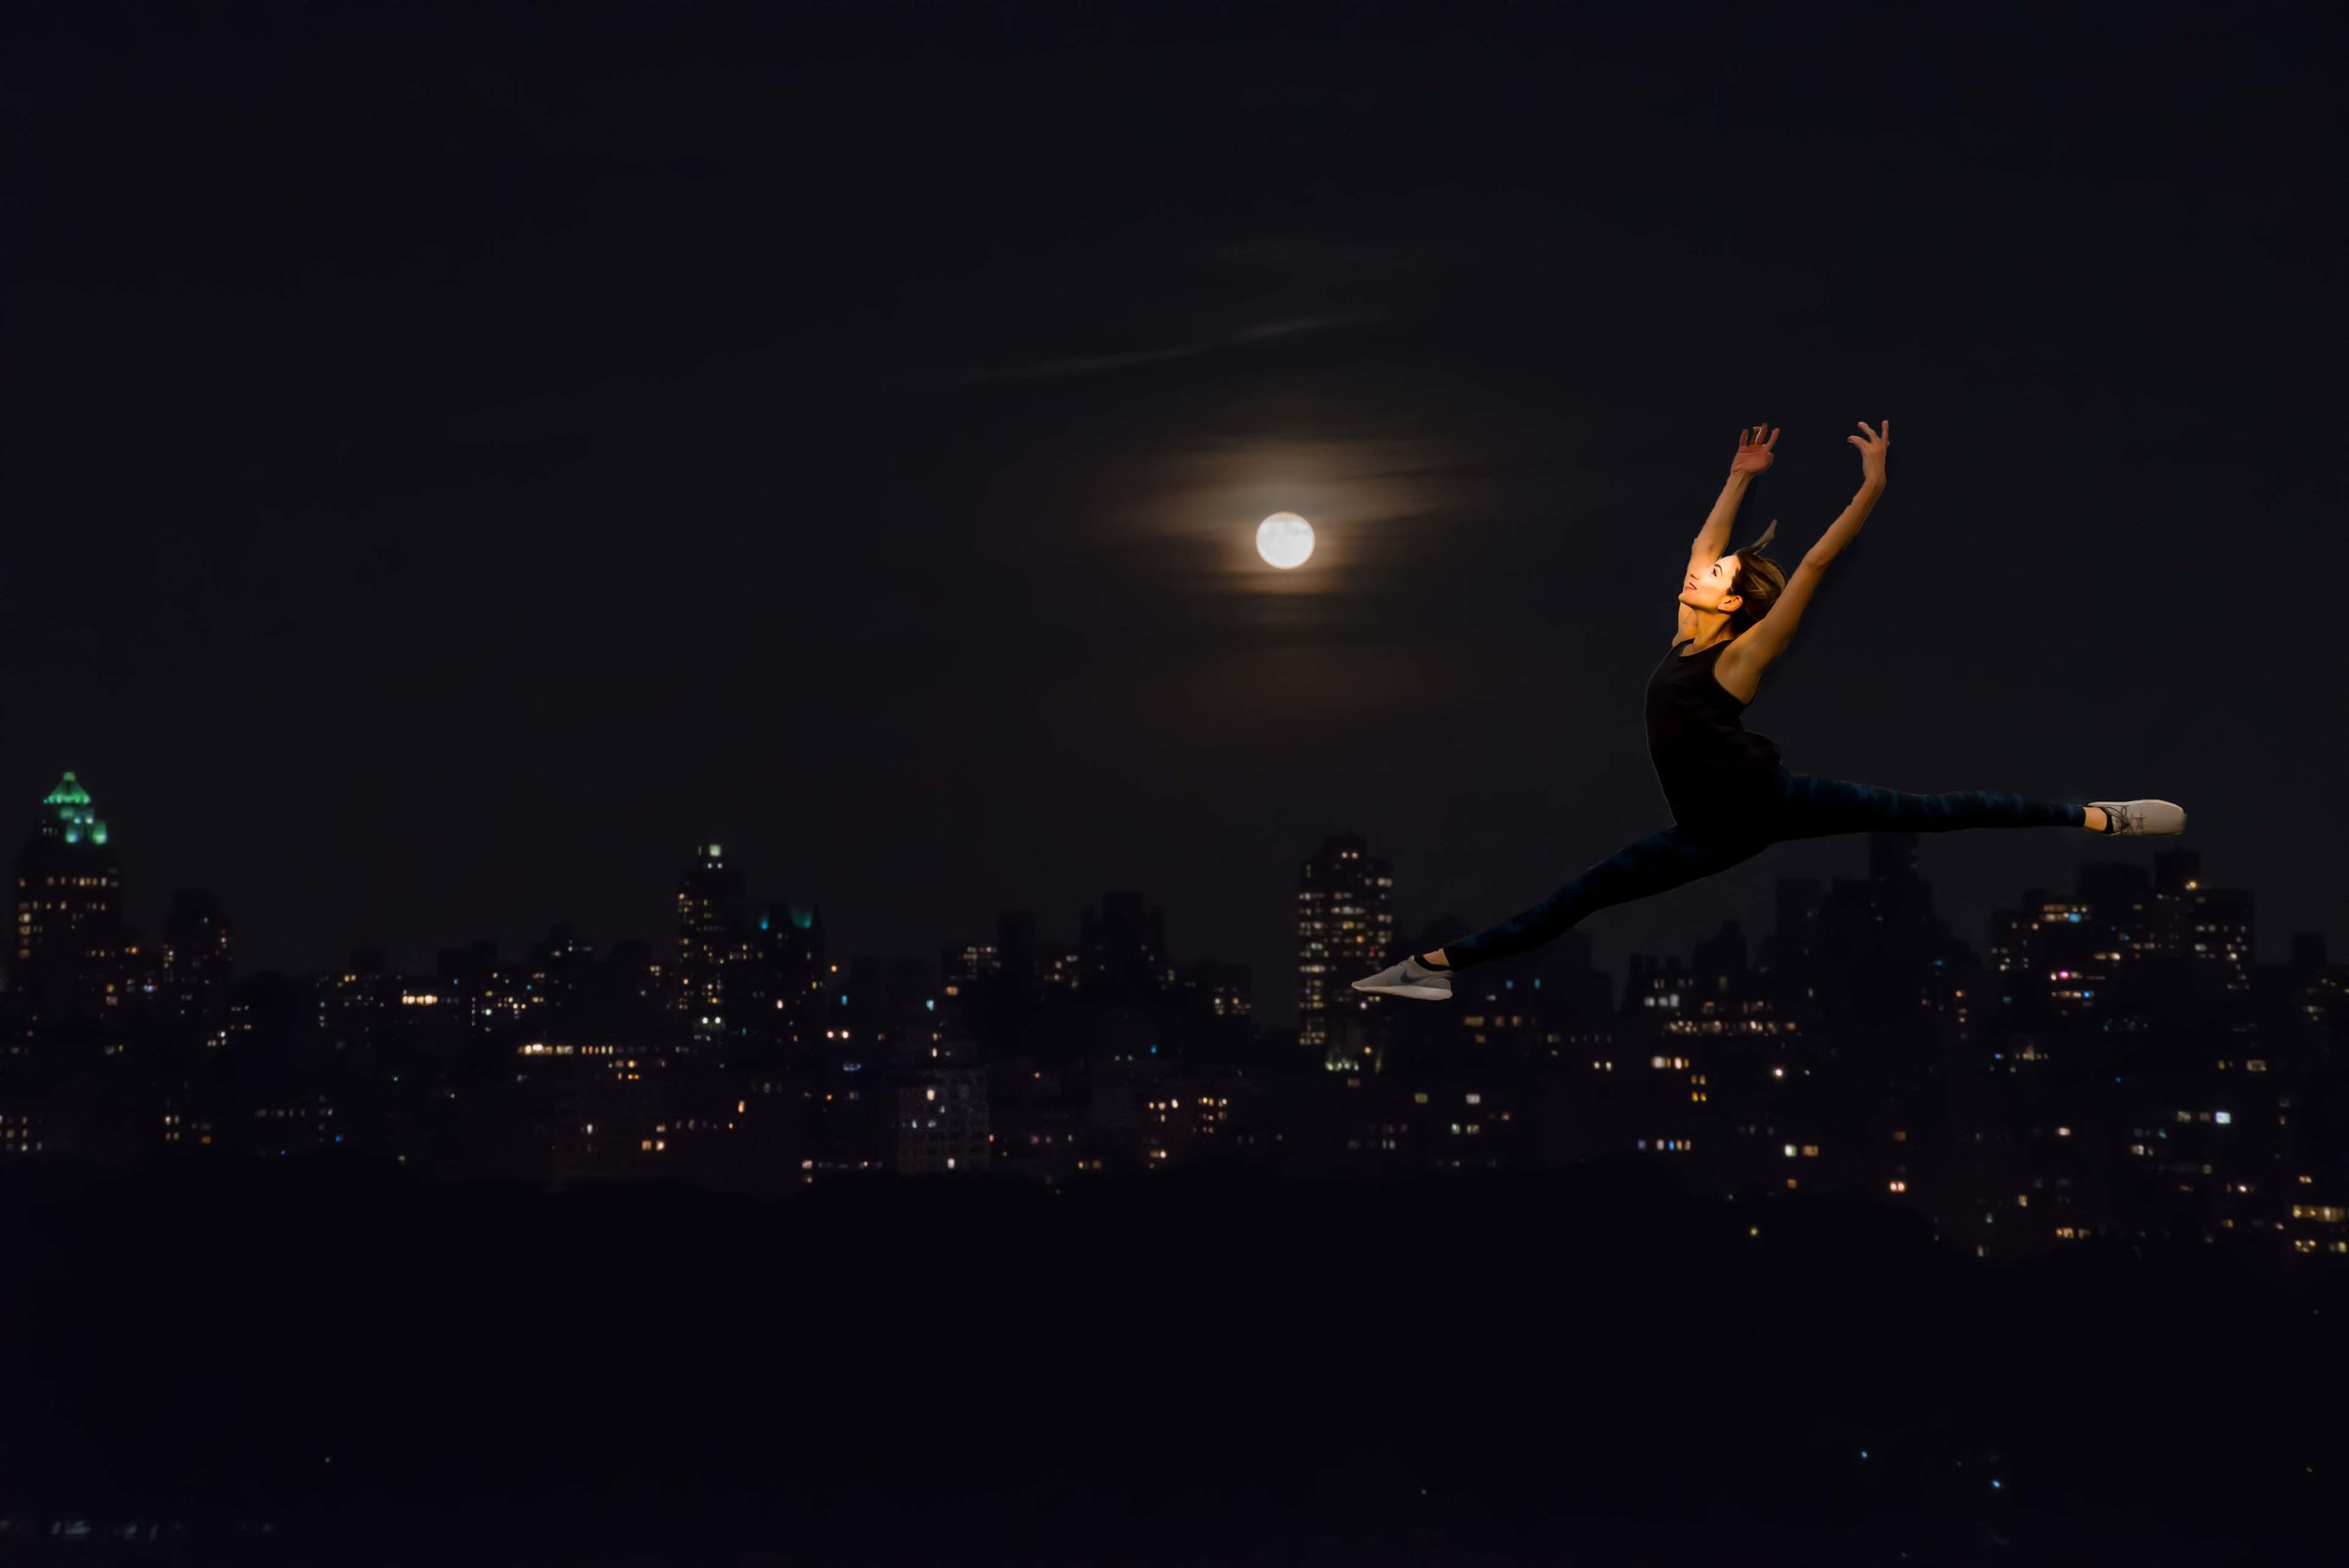 Dancin' in the Moonlight. New York, NY 2016